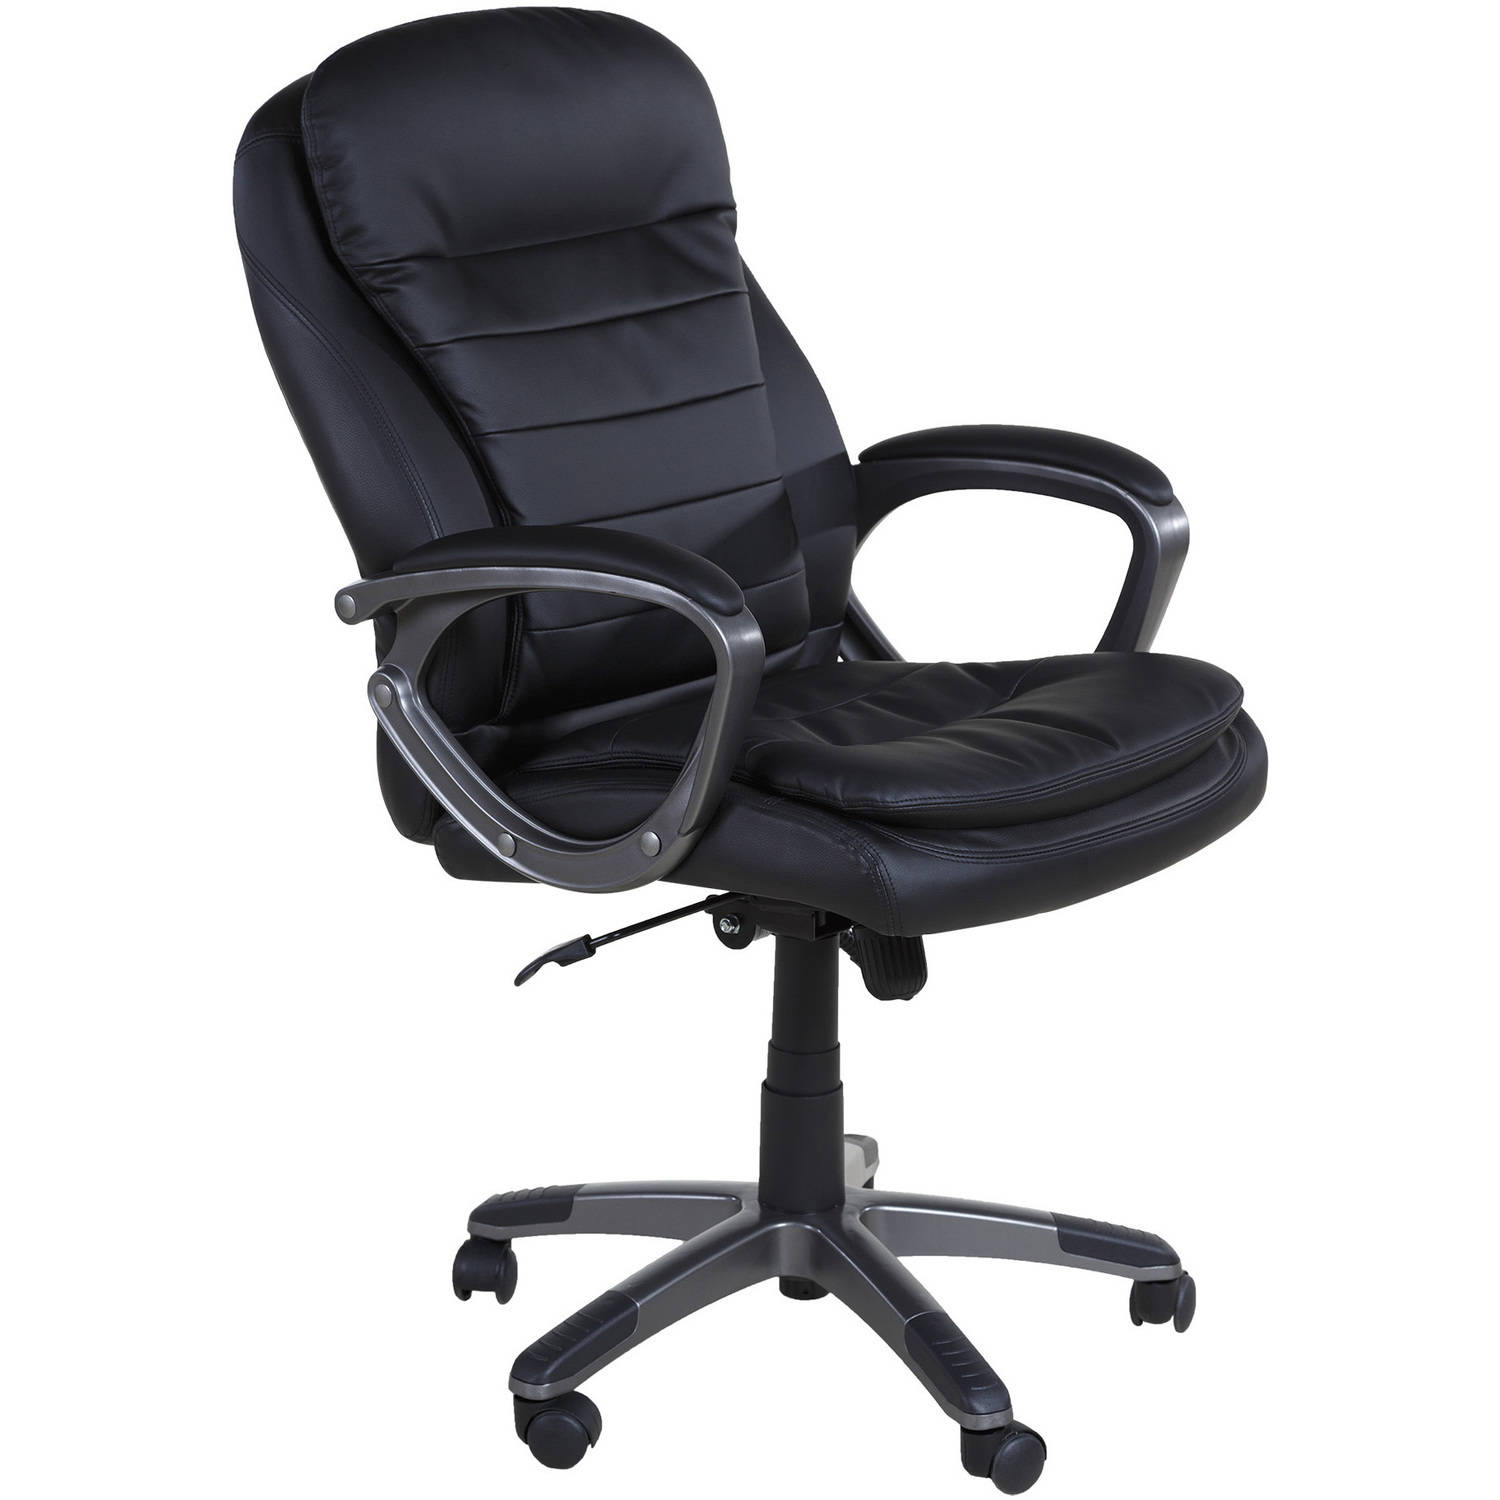 OneSpace 60-2383 Leather Executive Pillow Top Chair with Padded Armrests